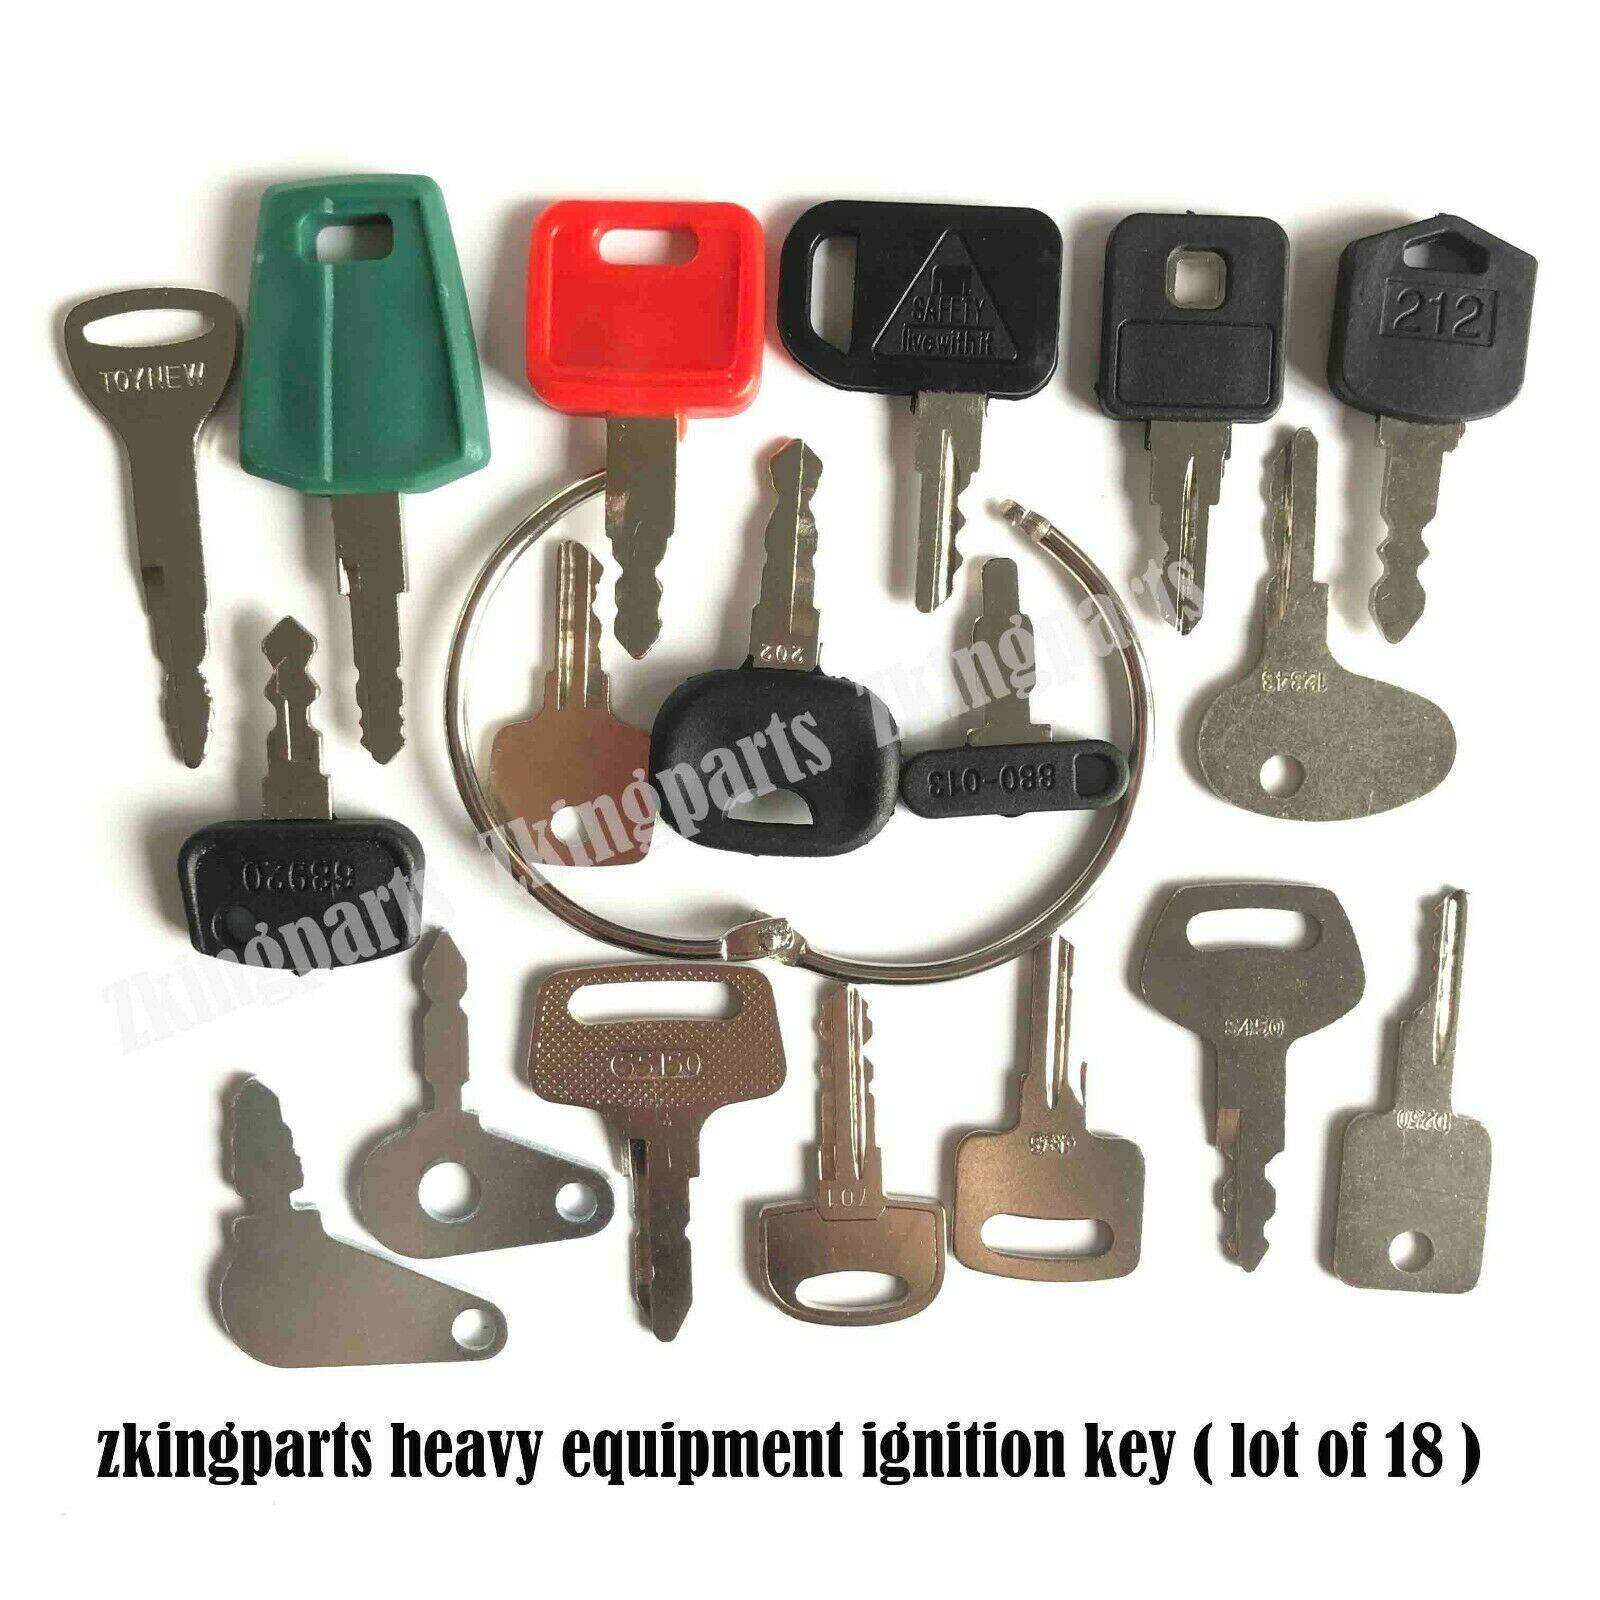 5 FITS  Volvo F series Wheel Loader Heavy Equipment Ignition Keys C001 11444208